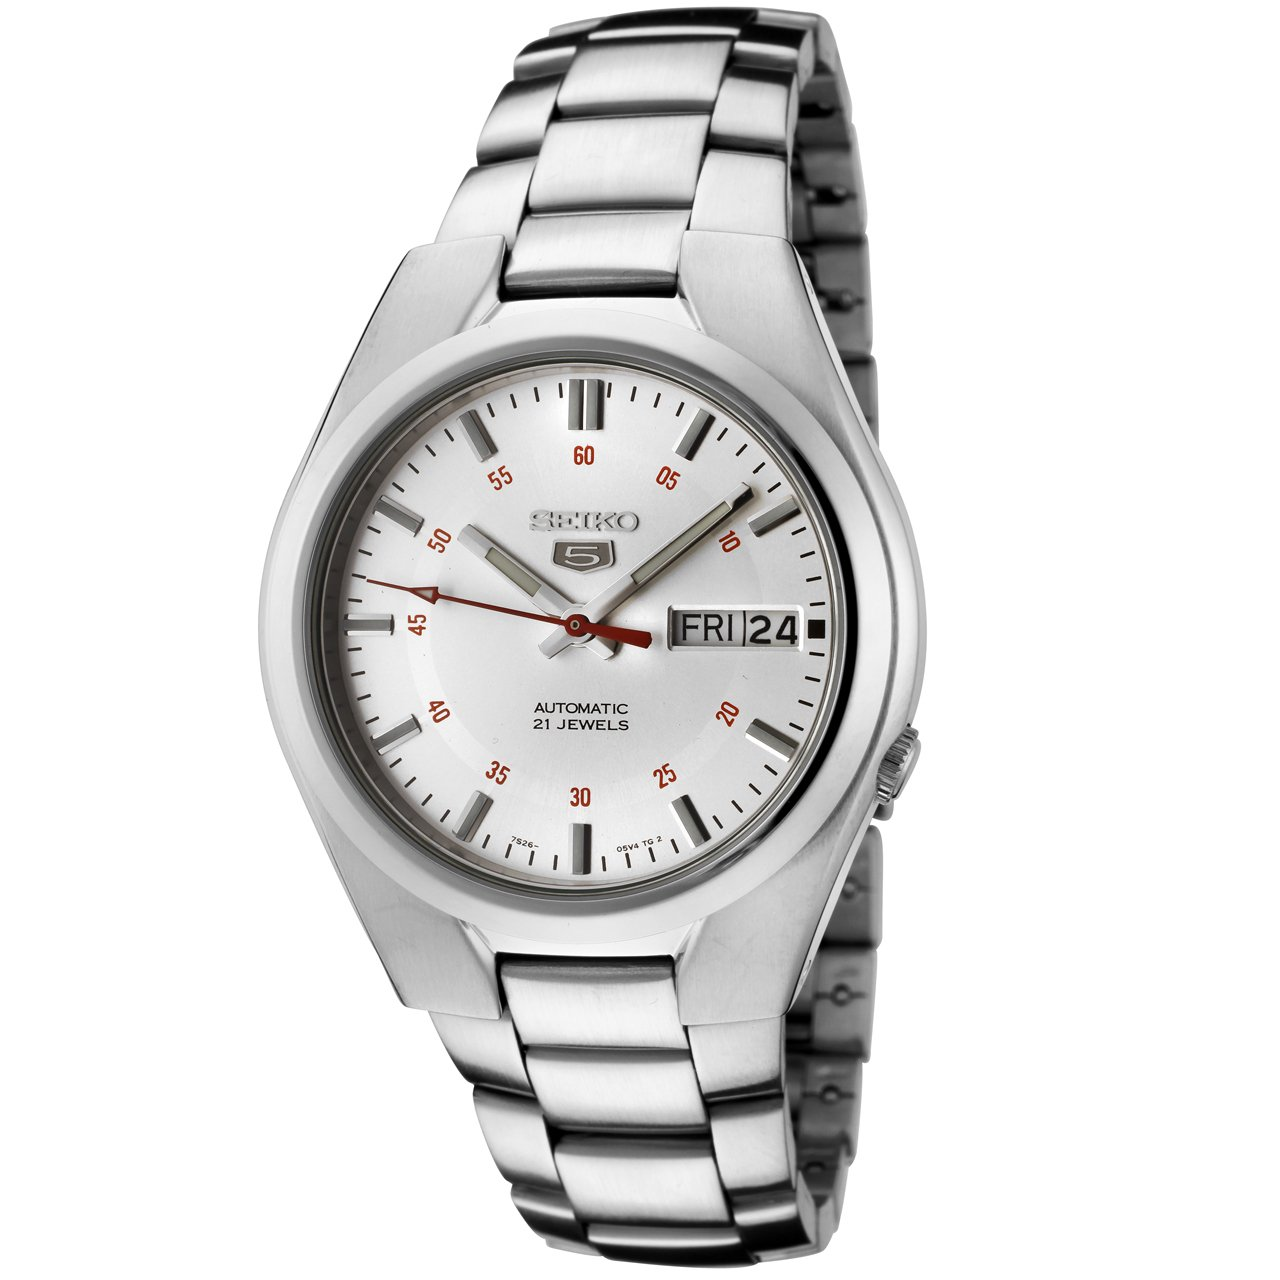 Seiko Men&#8217;s SNK613 Seiko 5 Automatic Silver Dial Stainless Steel Watch 	$59.63